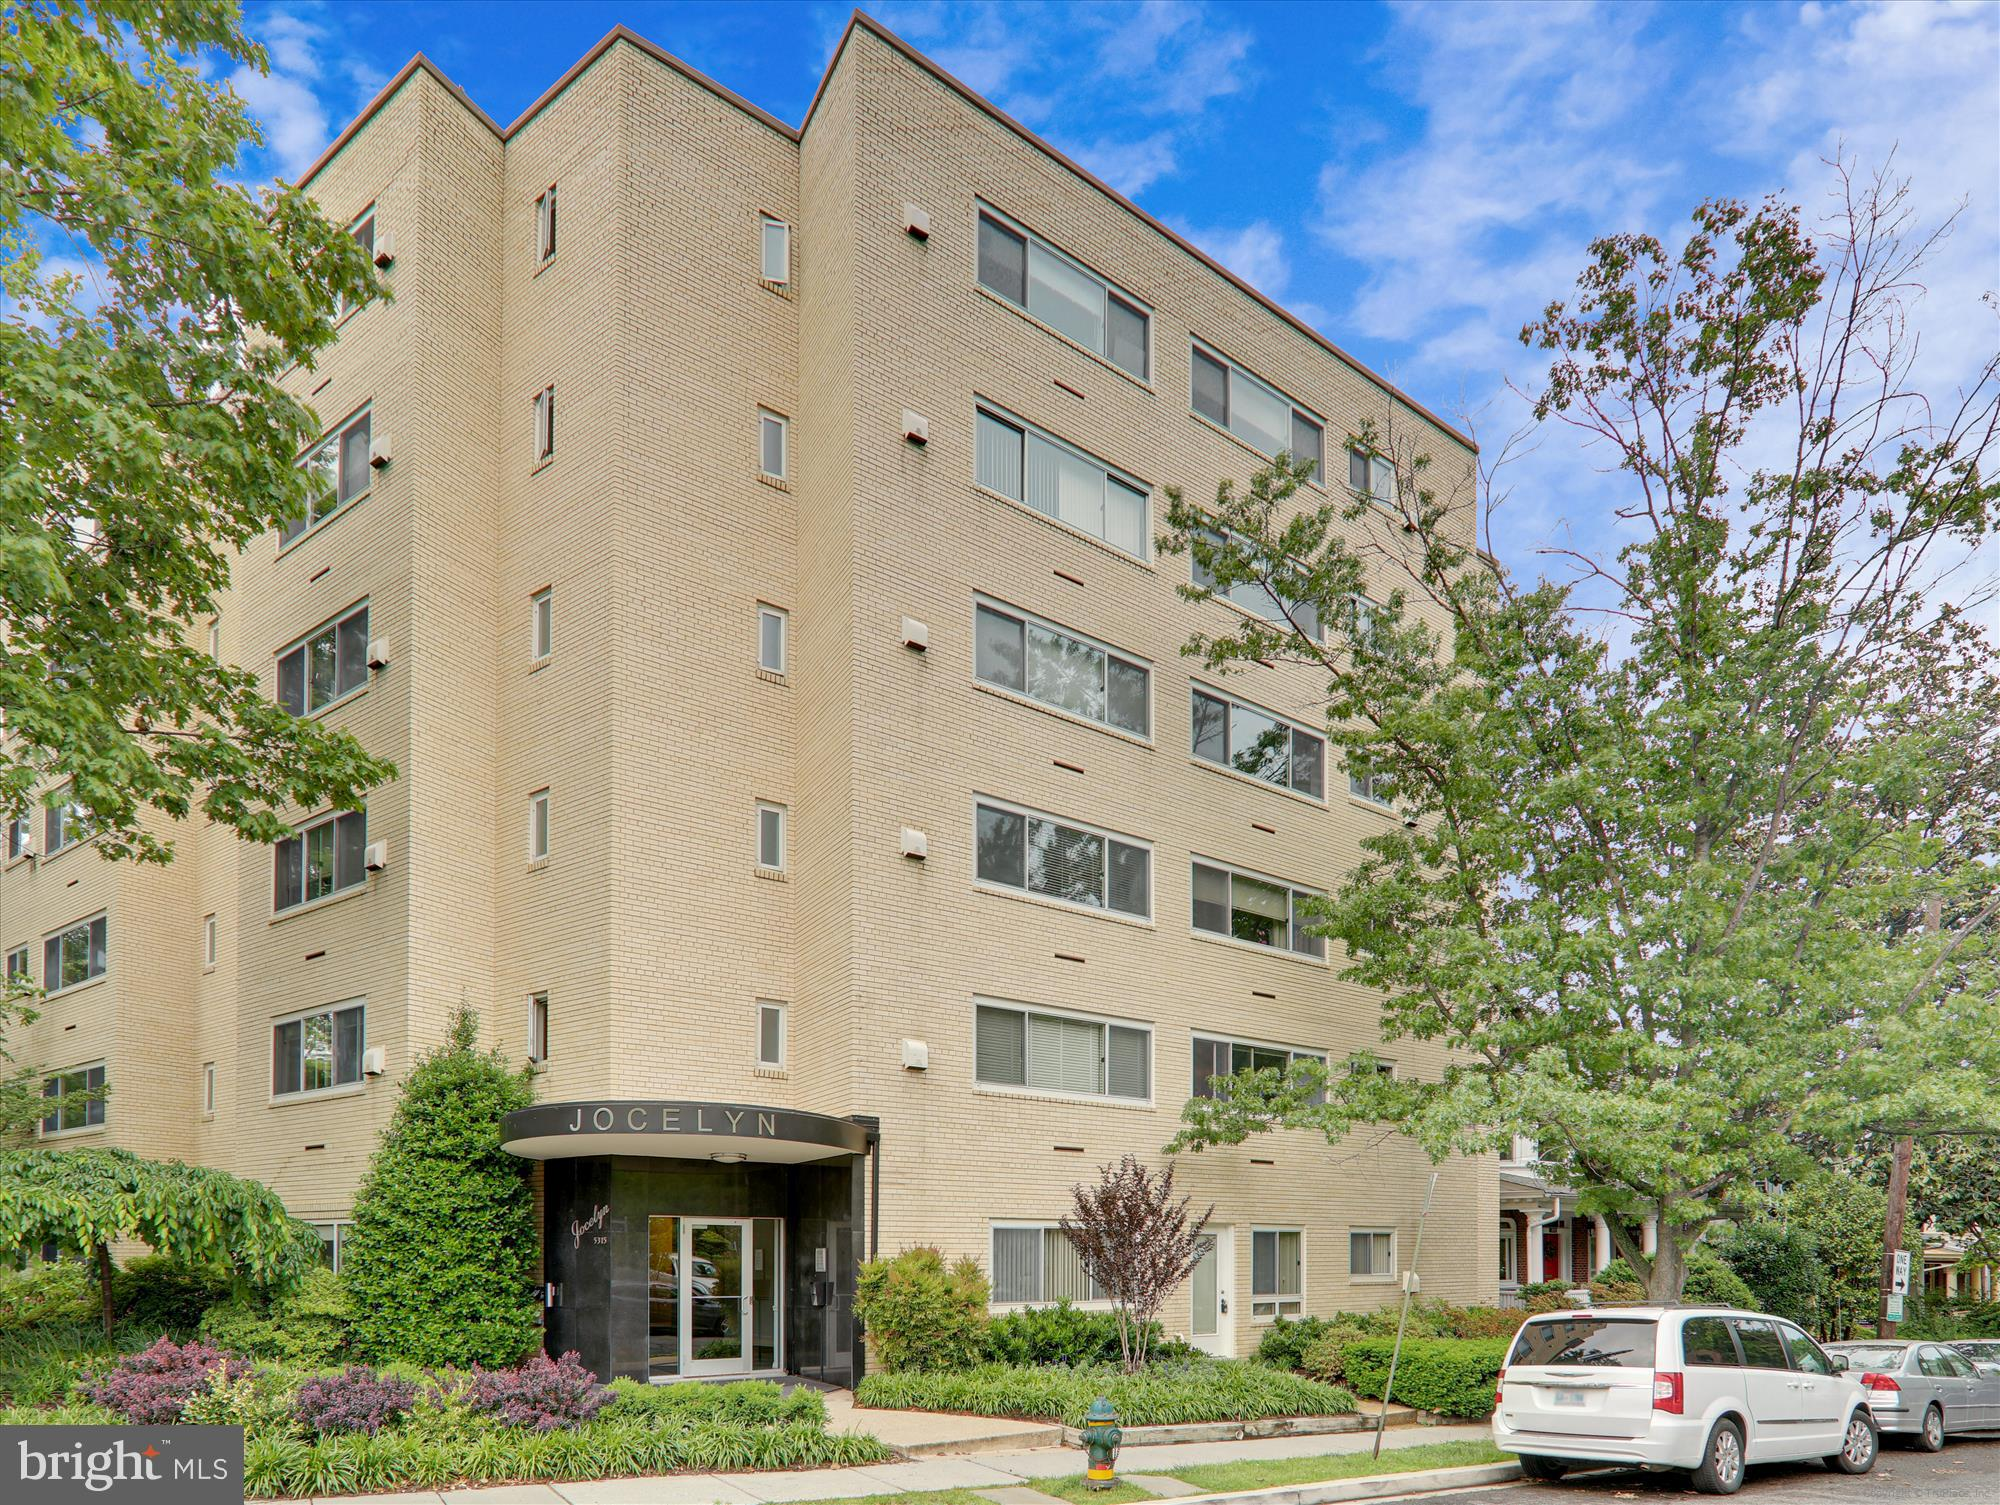 JUST LISTED!  Fab 2BR/2BA condo with 2 exclusive separate entrances to unit: Private Jocelyn Street